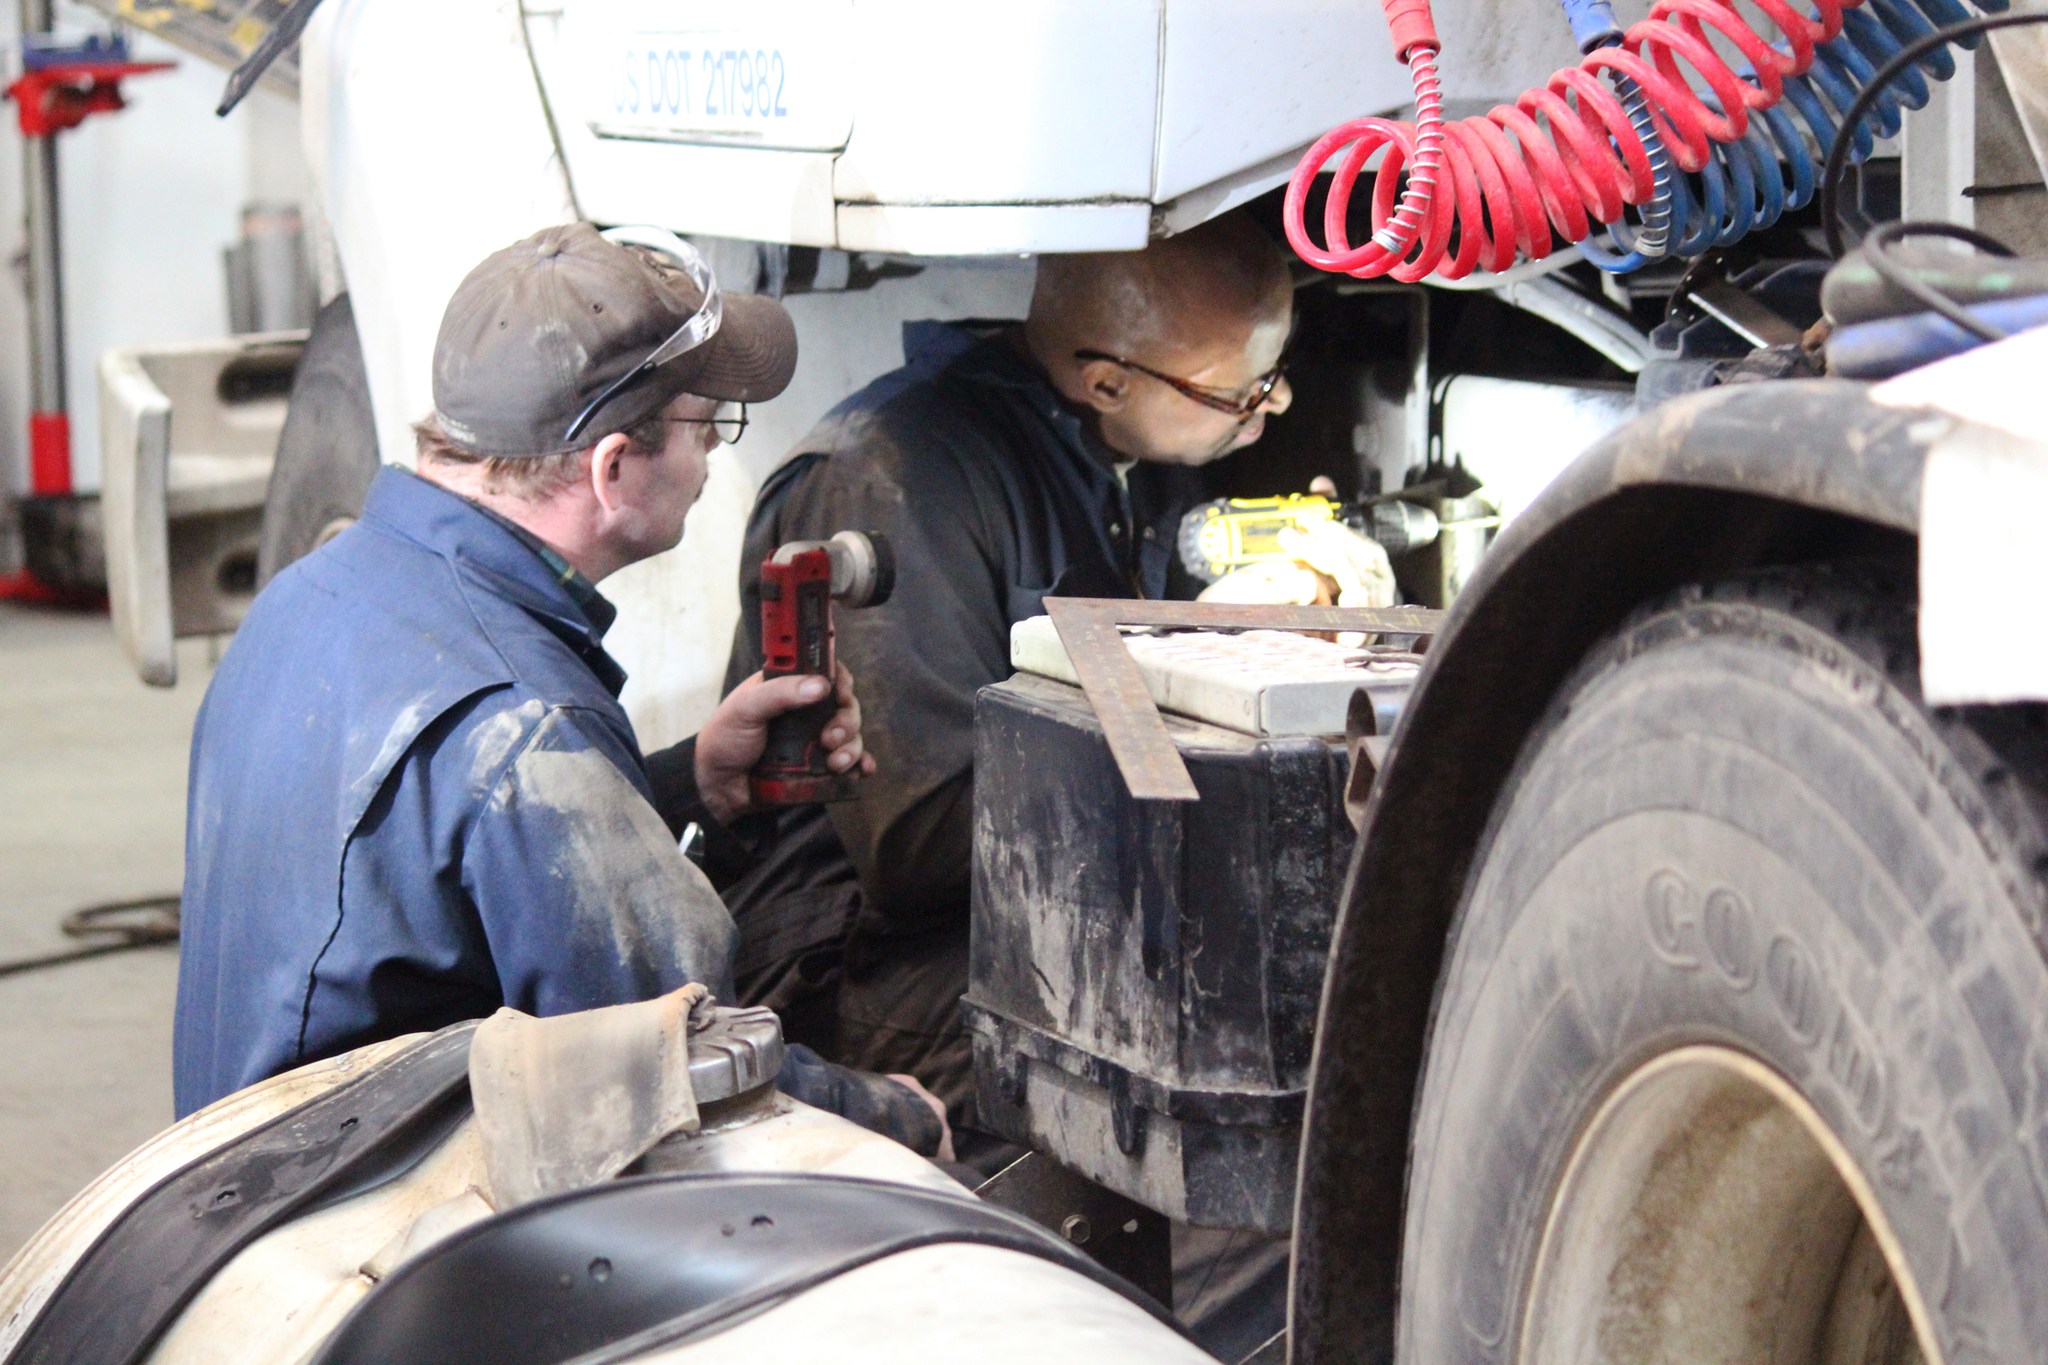 Lee Berzanske, owner of Lee's Heavy Equipment Repair, shines a light on an Enstar Natural Gas Co. truck so Thaddeus Lewis can see where to drill holes during their work day Thursday, Feb. 16, 2017 at the repair shop on Kalifornsky Beach Road near Kenai, Alaska. Lewis, an inmate at Wildwood Correctional Complex, was the first offender admitted into the facility's new Vocational Work Release Program. (Megan Pacer/Peninsula Clarion)